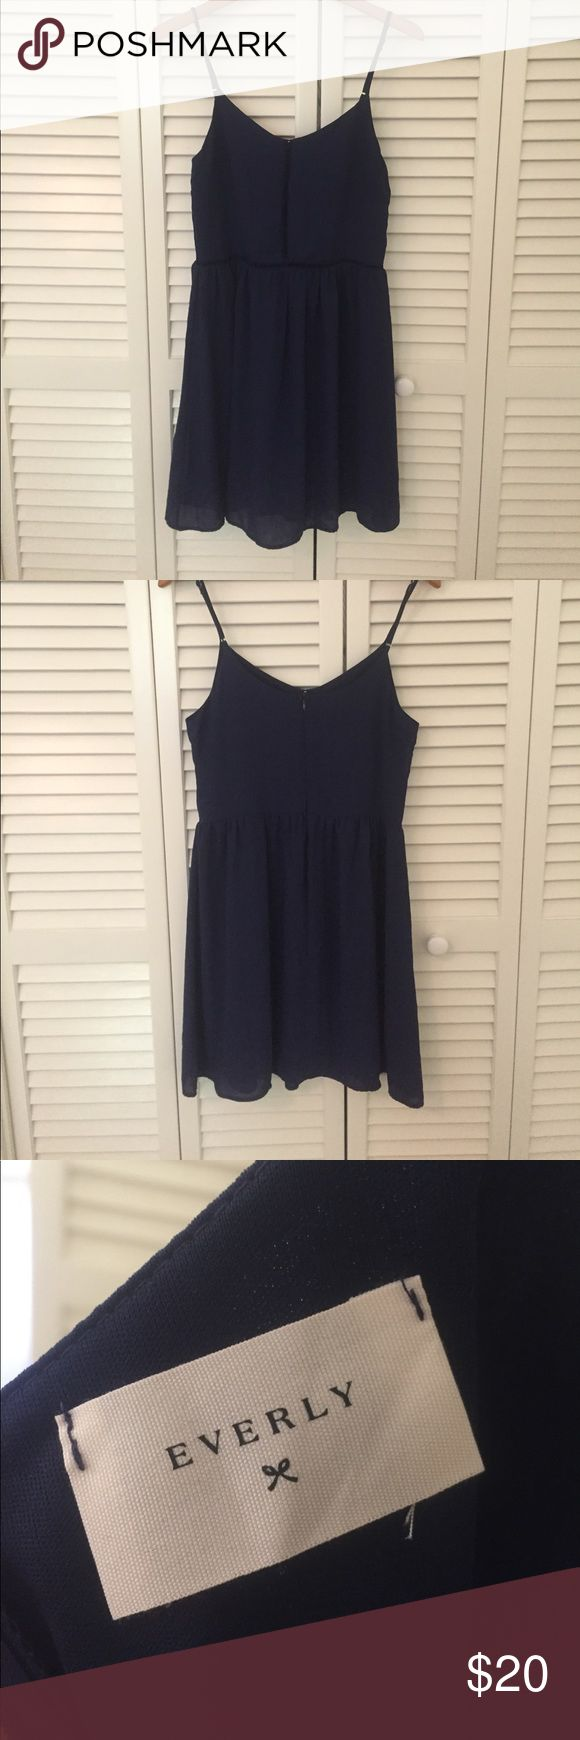 Francesca's Sundress with Cutouts Small see through ladder detail on waist line and up the middle that's see through as shown in the photos. Adjustable straps. Barely worn. Will consider reasonable offers 😊 Francesca's Collections Dresses Mini